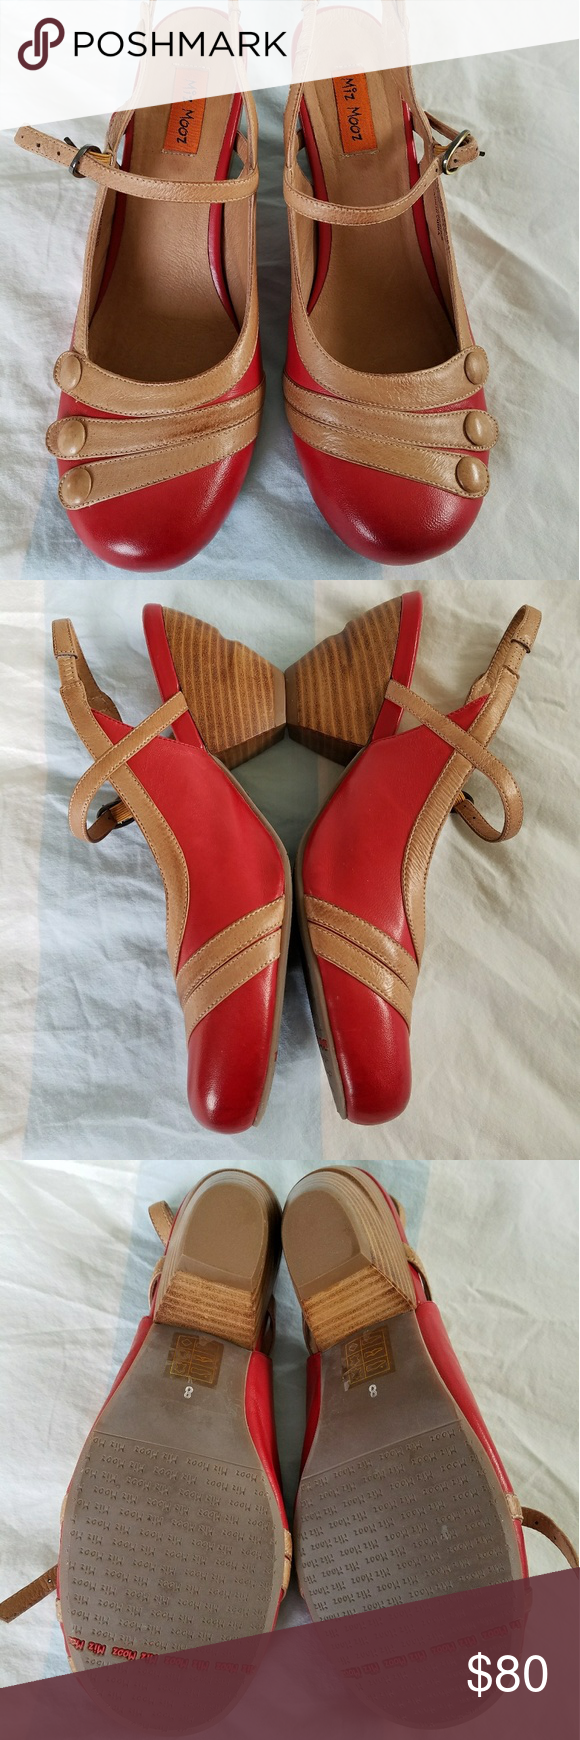 Brand New Miz Mooz Ella size 8 Never been worn except to try on! Miz Mooz red and brown tan! Size 8. These have been sitting in my closet for years and I have just never had the chance to wear them. Miz Mooz Shoes Wedges